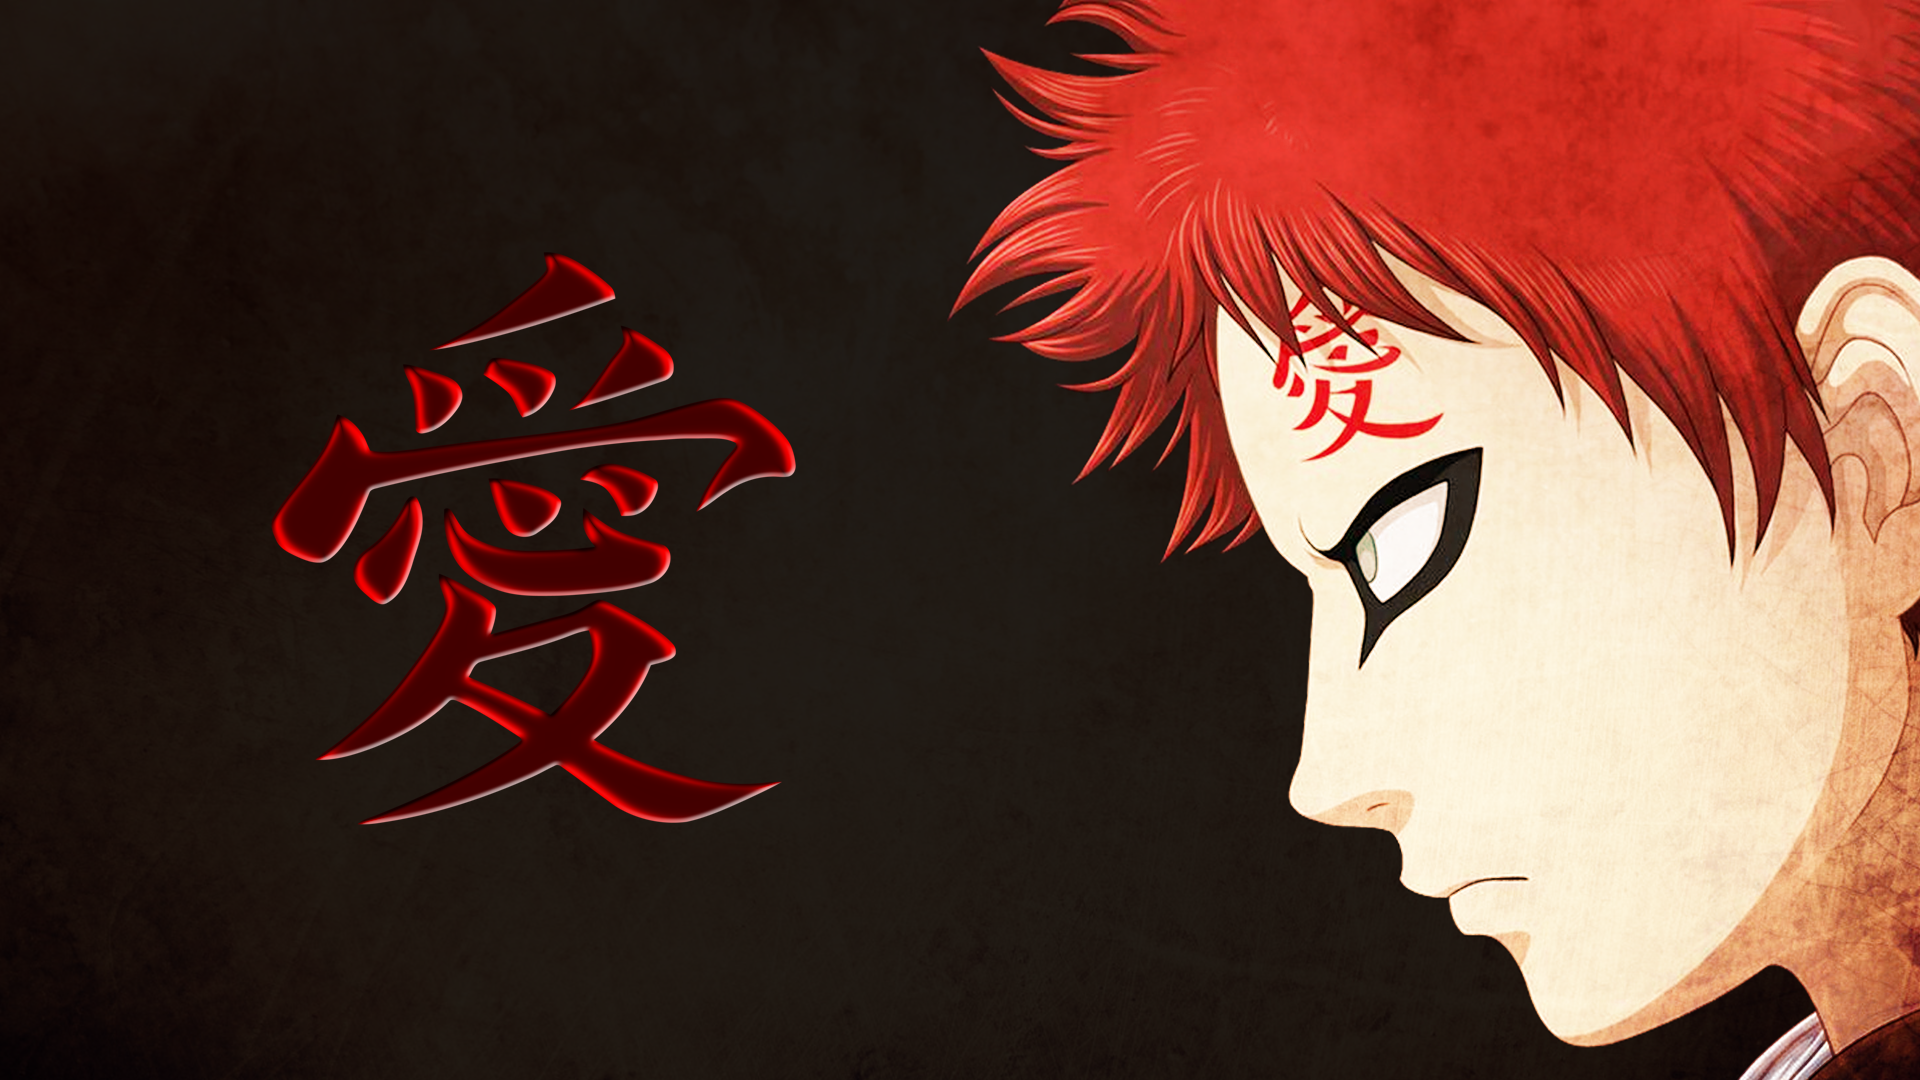 Backgrounds For Gaara Background Gaara Naruto Wallpaper Best